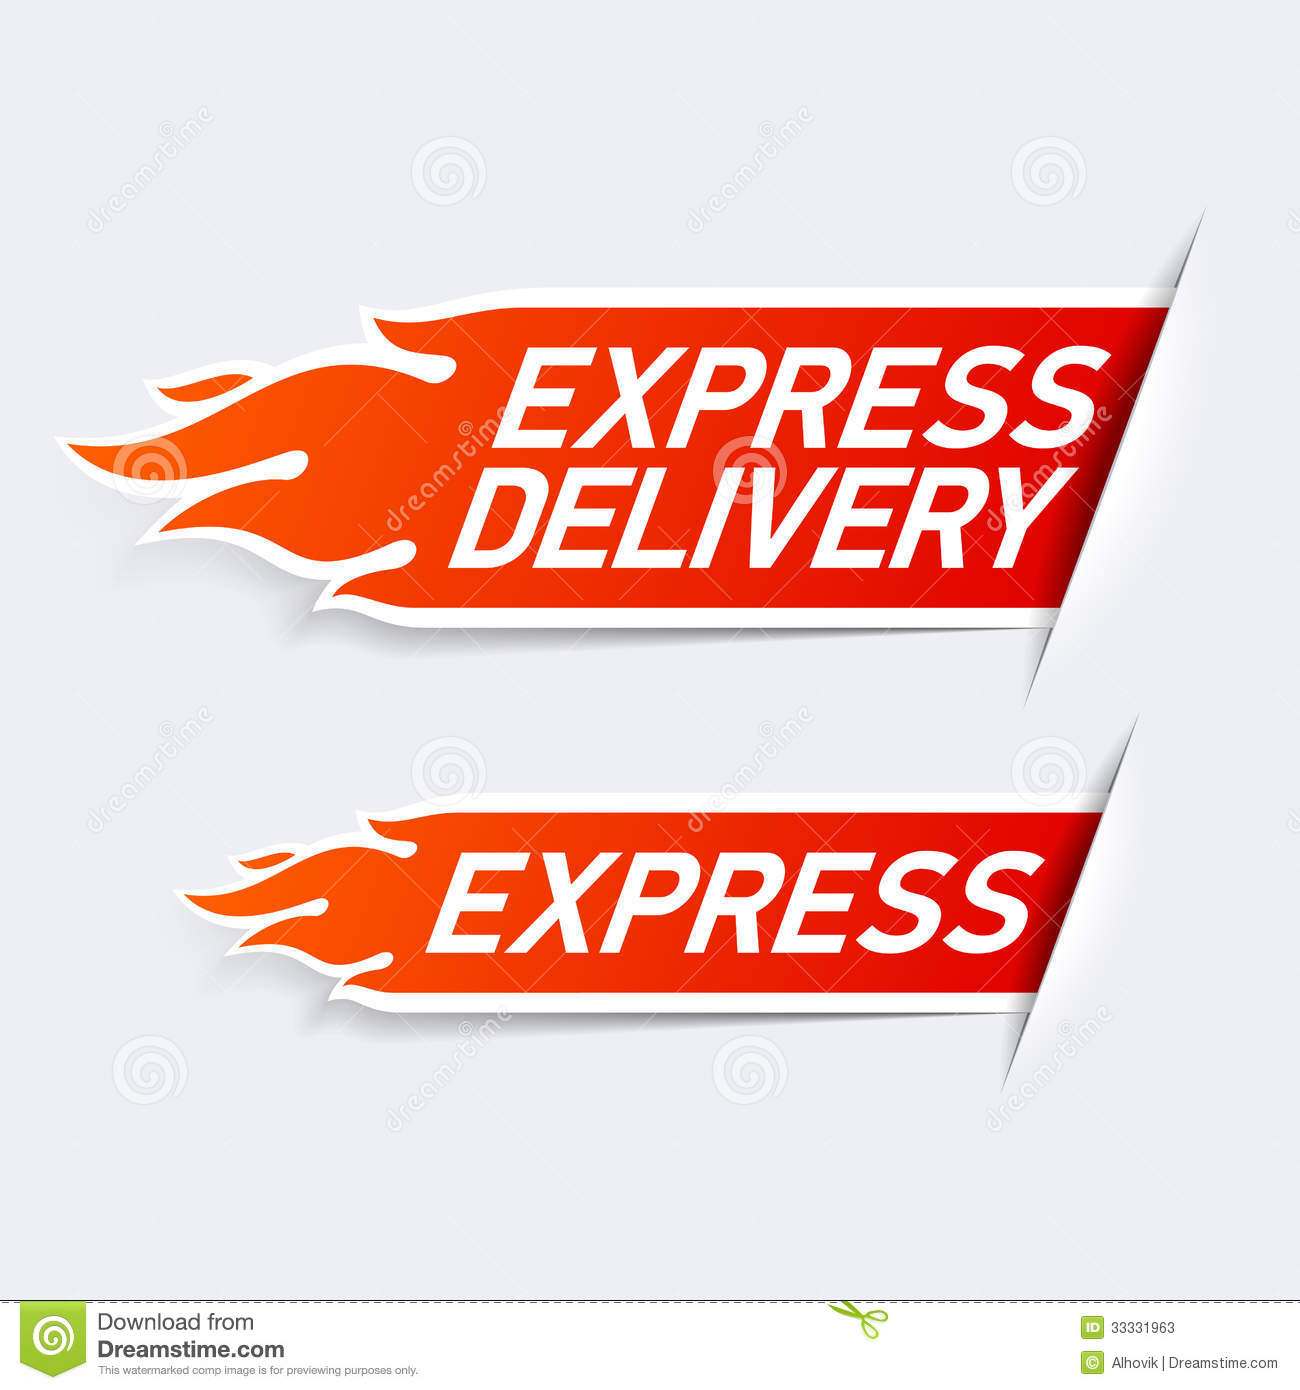 Express delivery stock vector. Image of courier, service ...